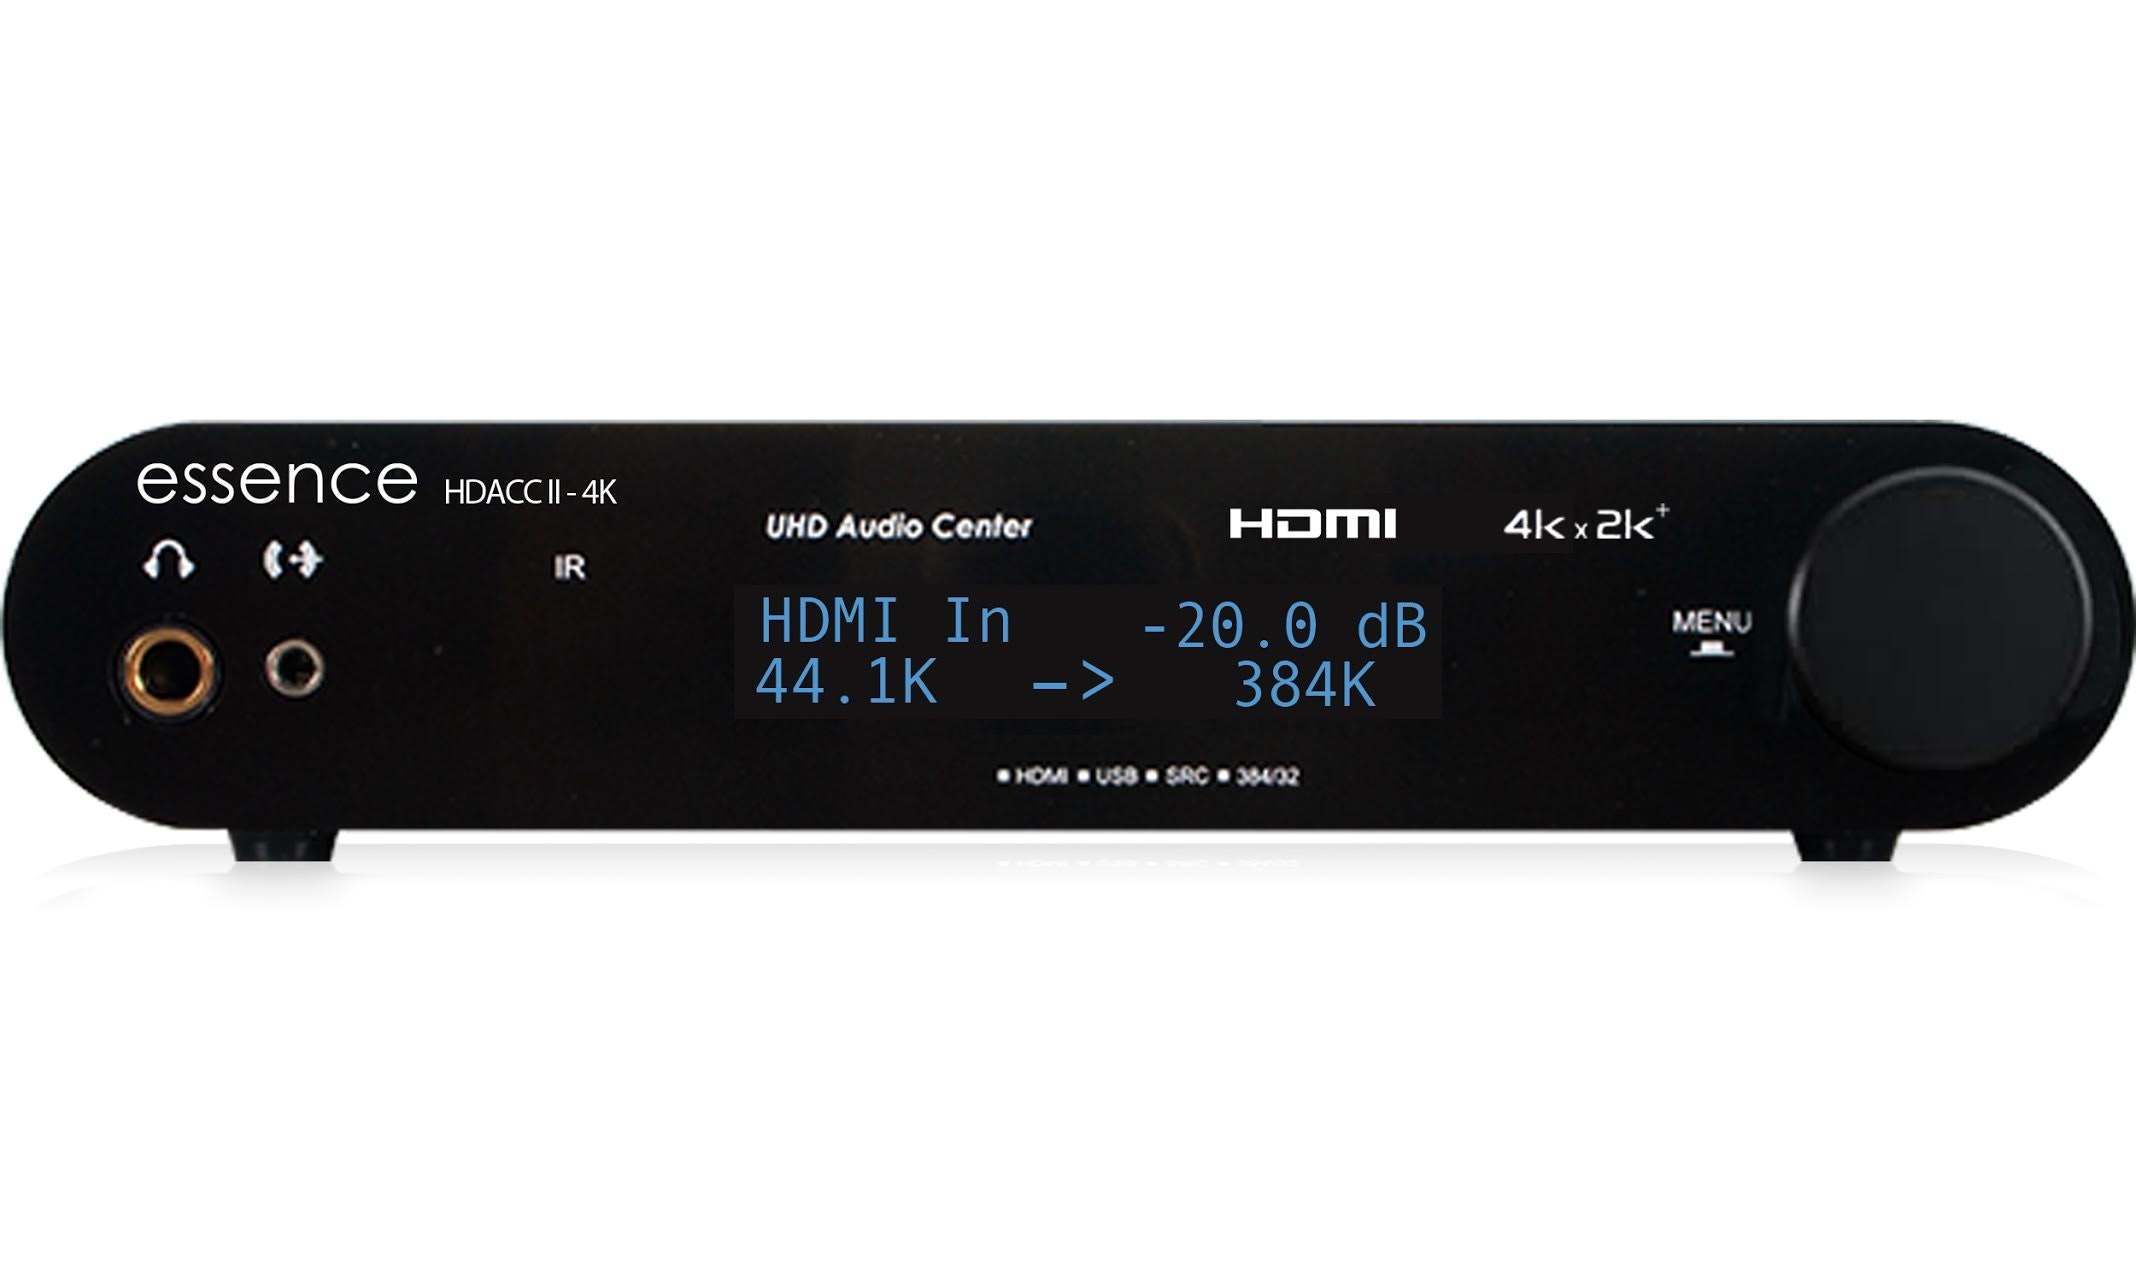 Essence HDACC II-4K with HDMI input switching